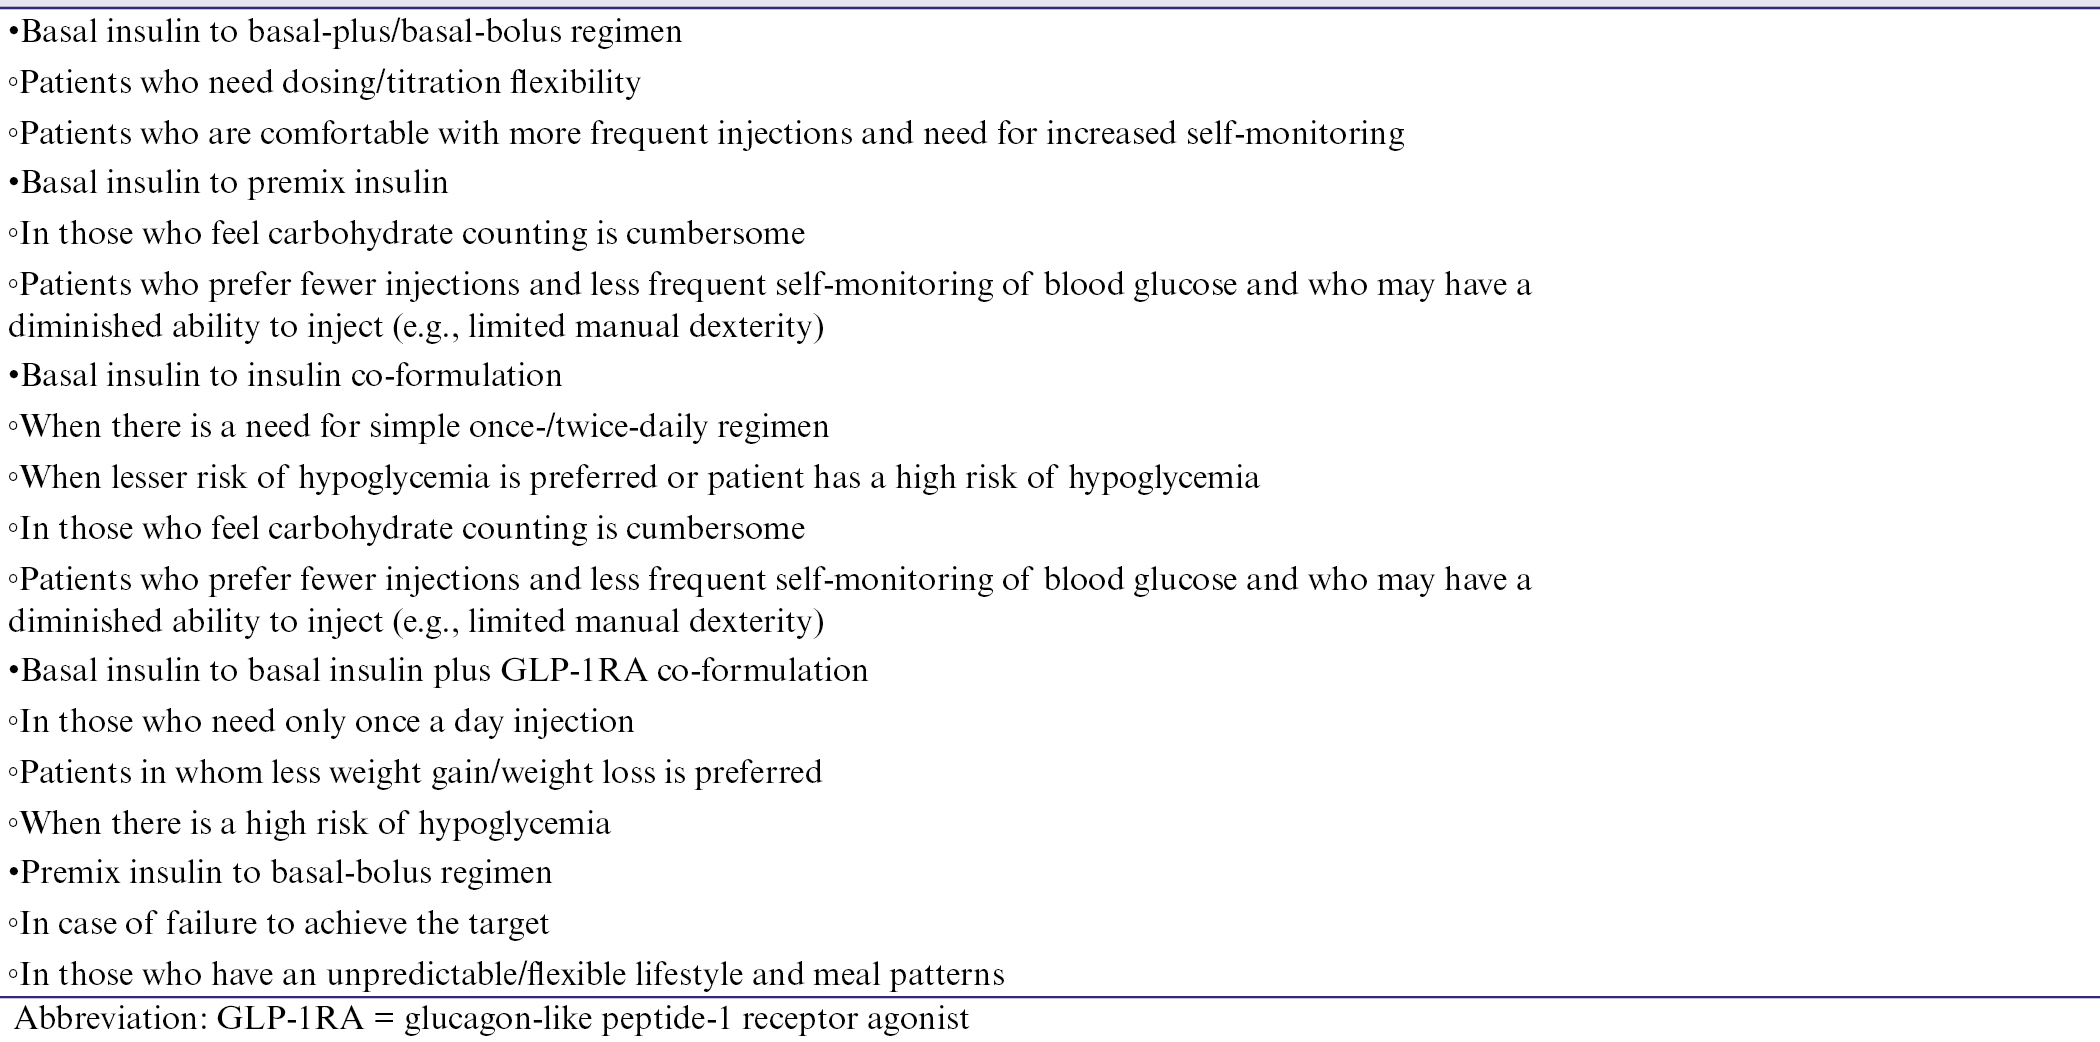 Table 3: Switching to other insulin/insulin regimen: Key messages